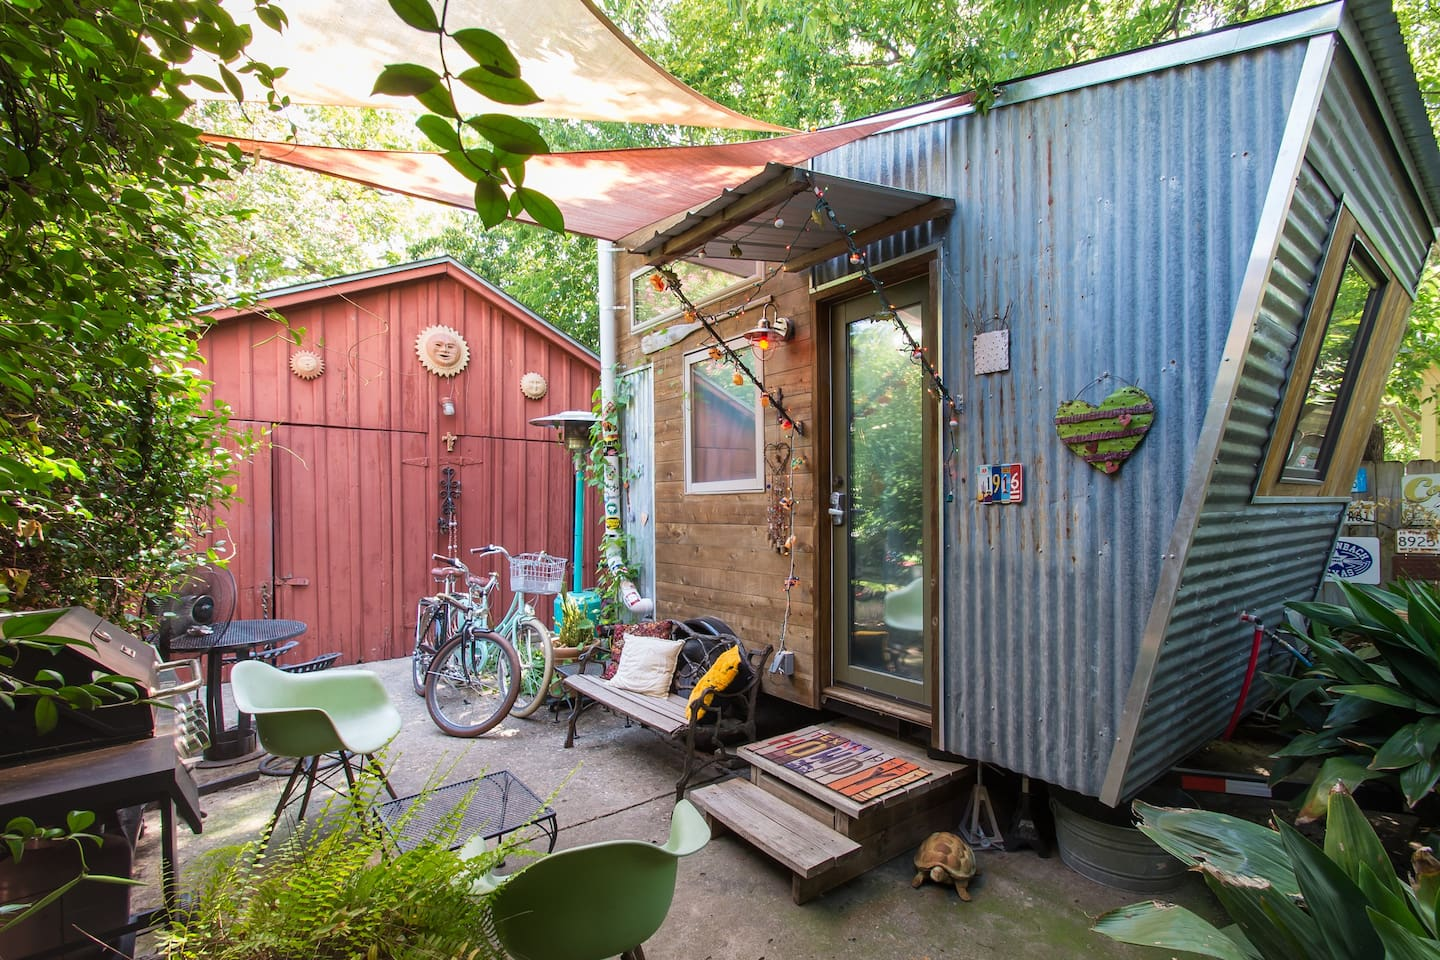 Hip and funky in a good way!  Enjoy the comforts of home in this adorable Tiny Pad.  So close to downtown... only $5 Uber to almost anywhere you want to go. Take the bikes for a spin or a workout.. your choice!